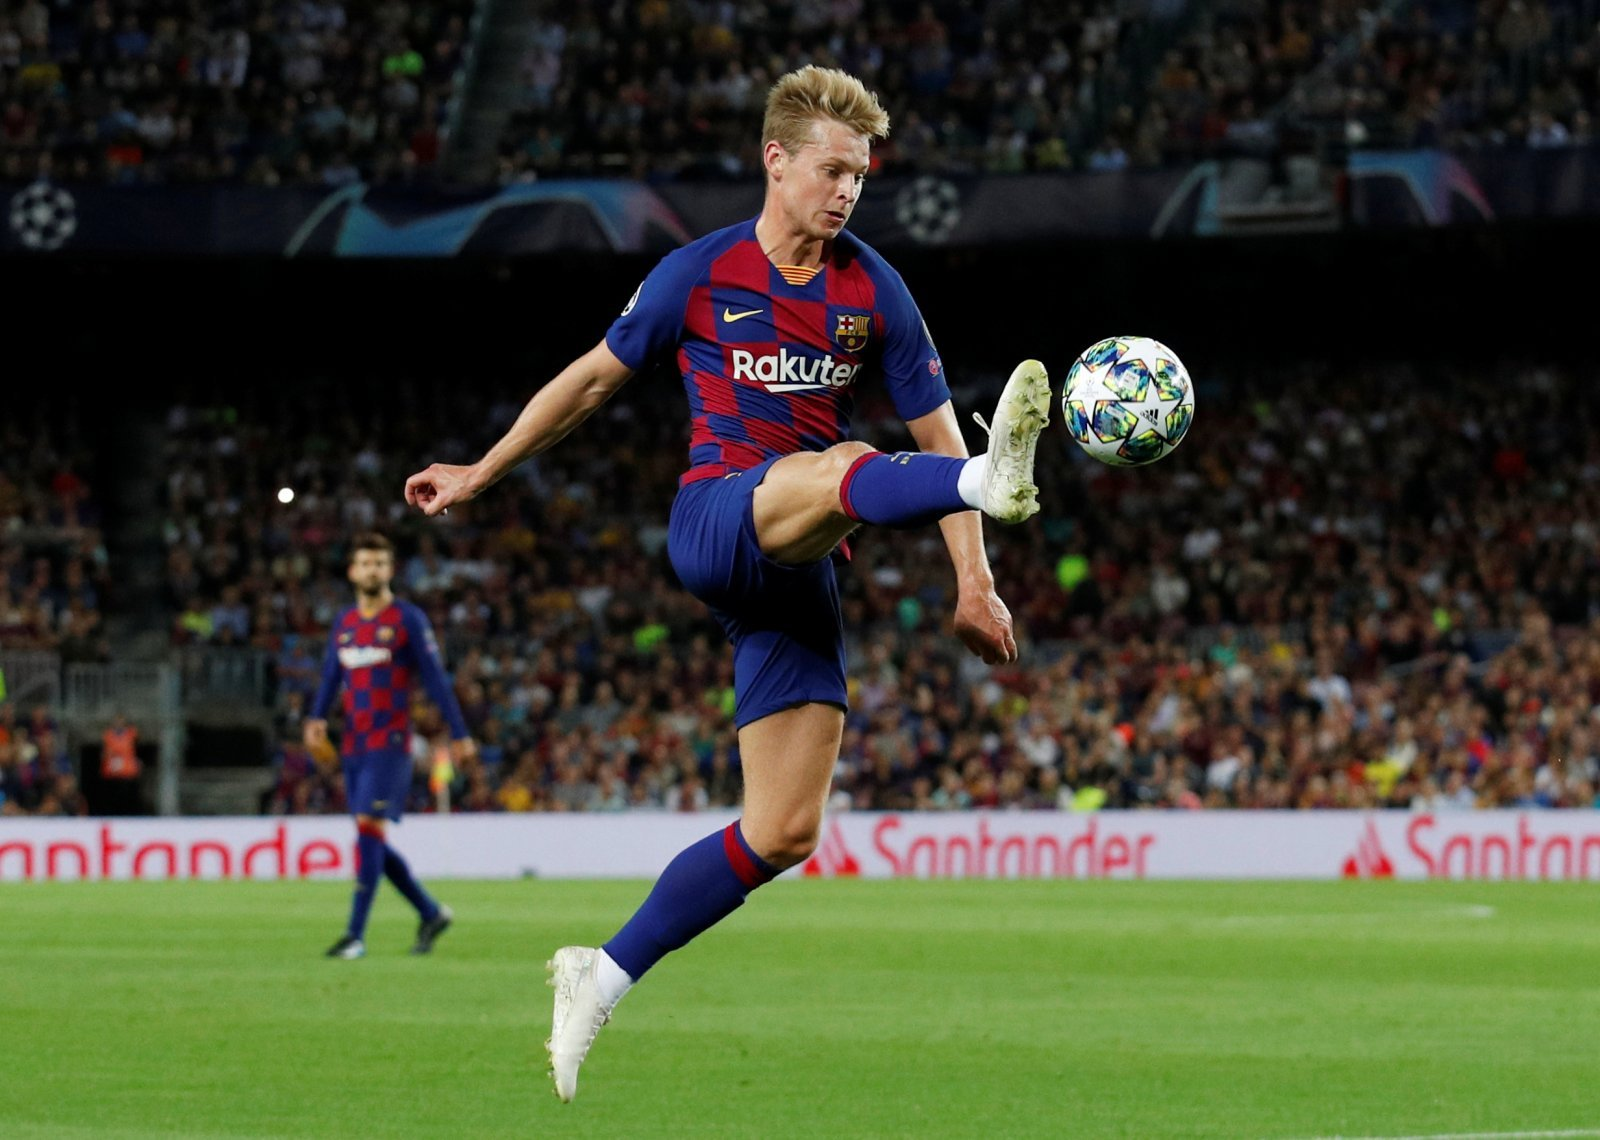 Unsung Hero: Frenkie de Jong should have earned praise for Barcelona performance against Sevilla